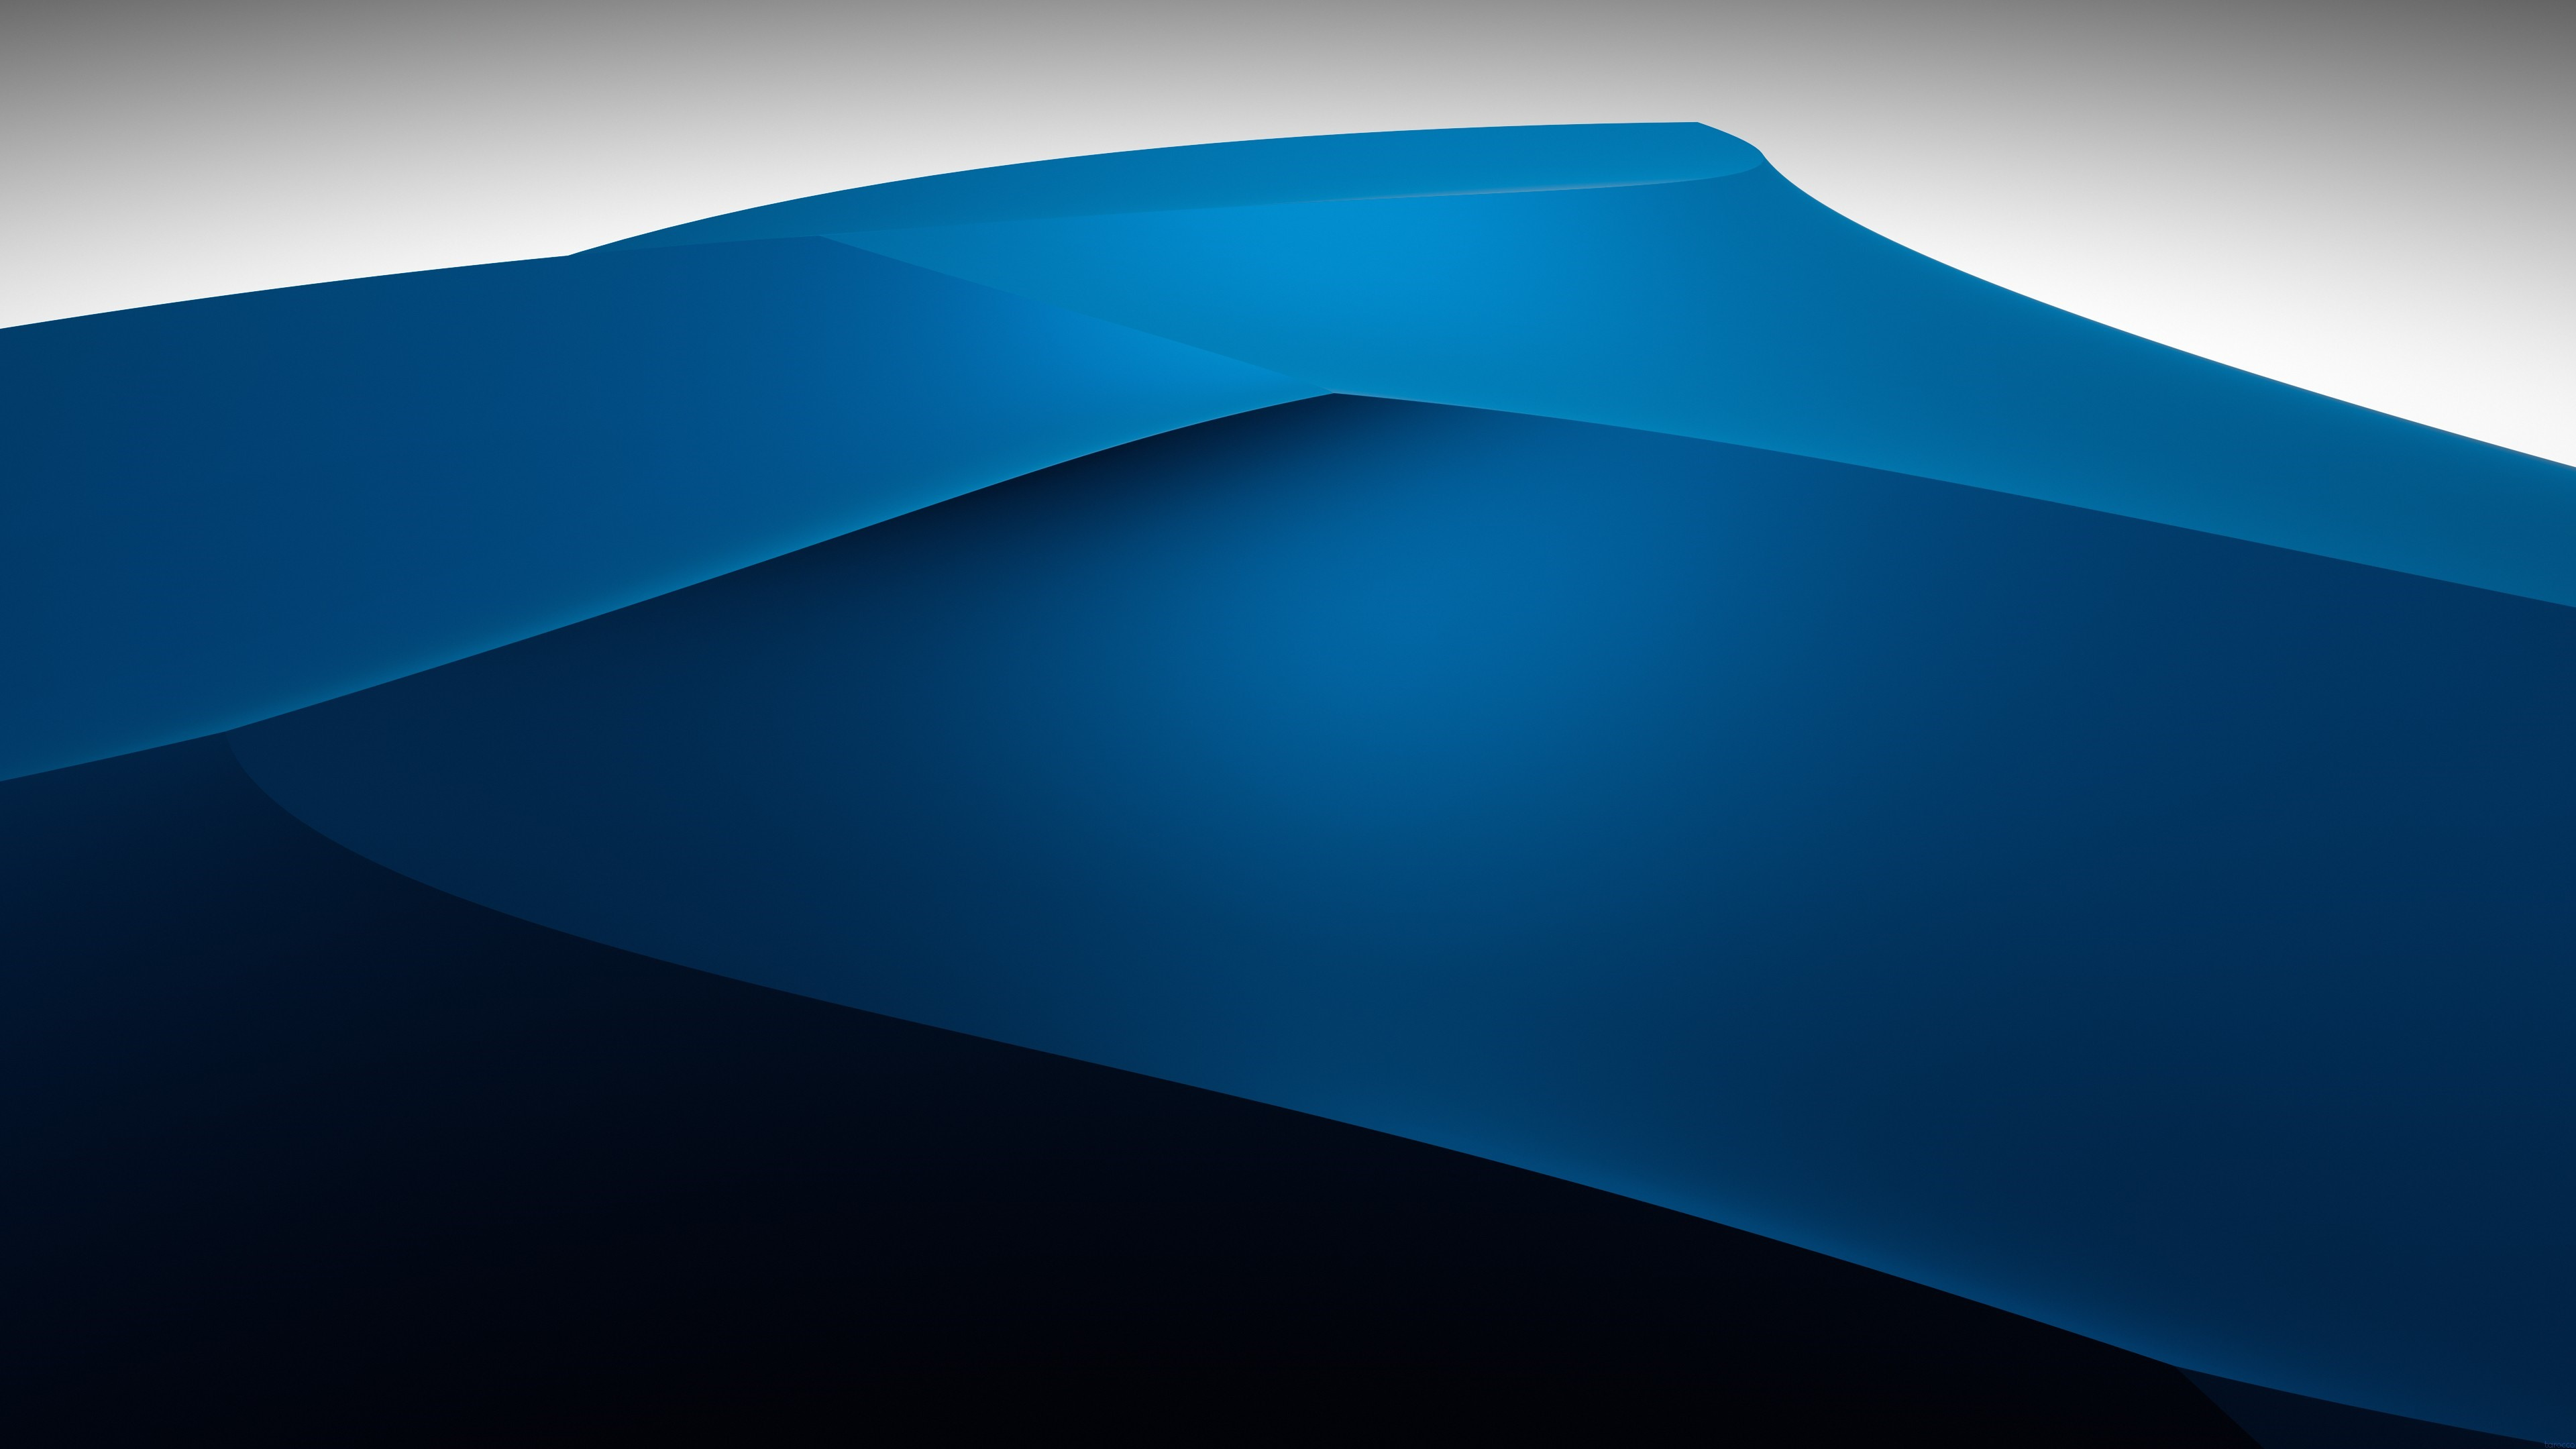 Wallpaper Abstract Blue Mountains 3840x2160 Uhd 4k Picture Image